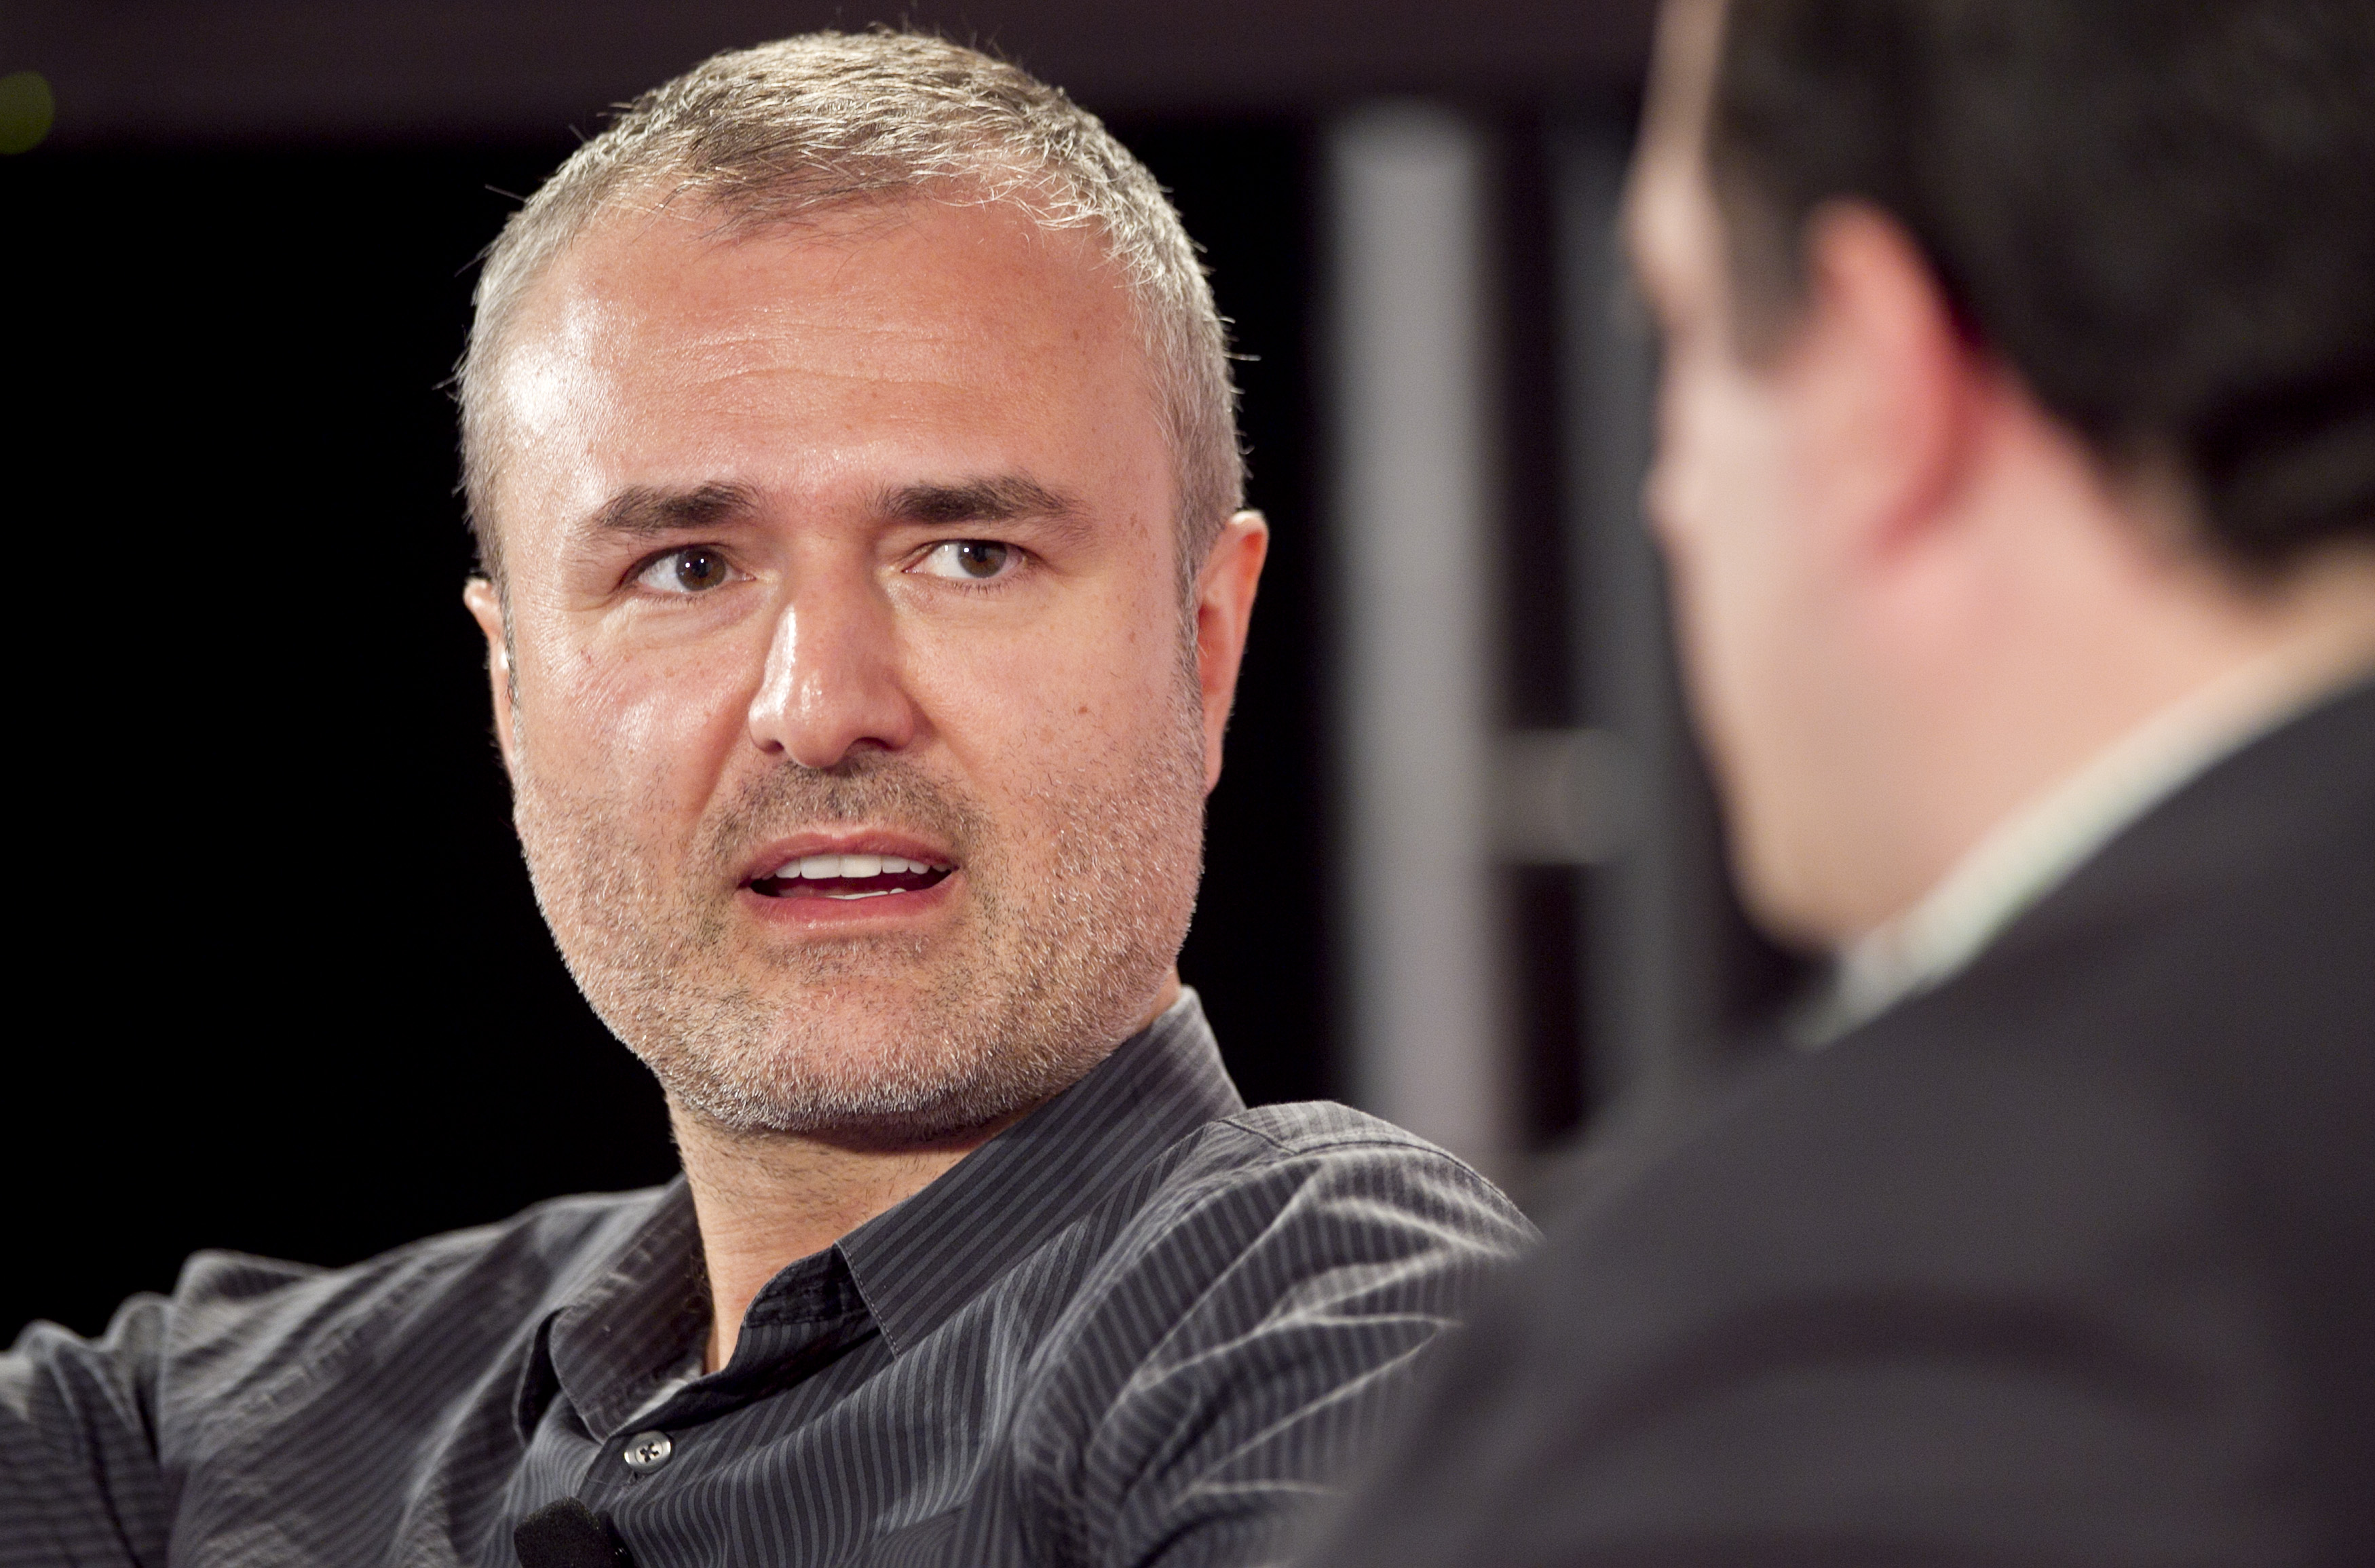 Nick Denton, founder of Gawker Media during the Interactive Advertising Bureau (IAB) MIXX 2010 conference and expo in New York, on Sept. 27, 2010.